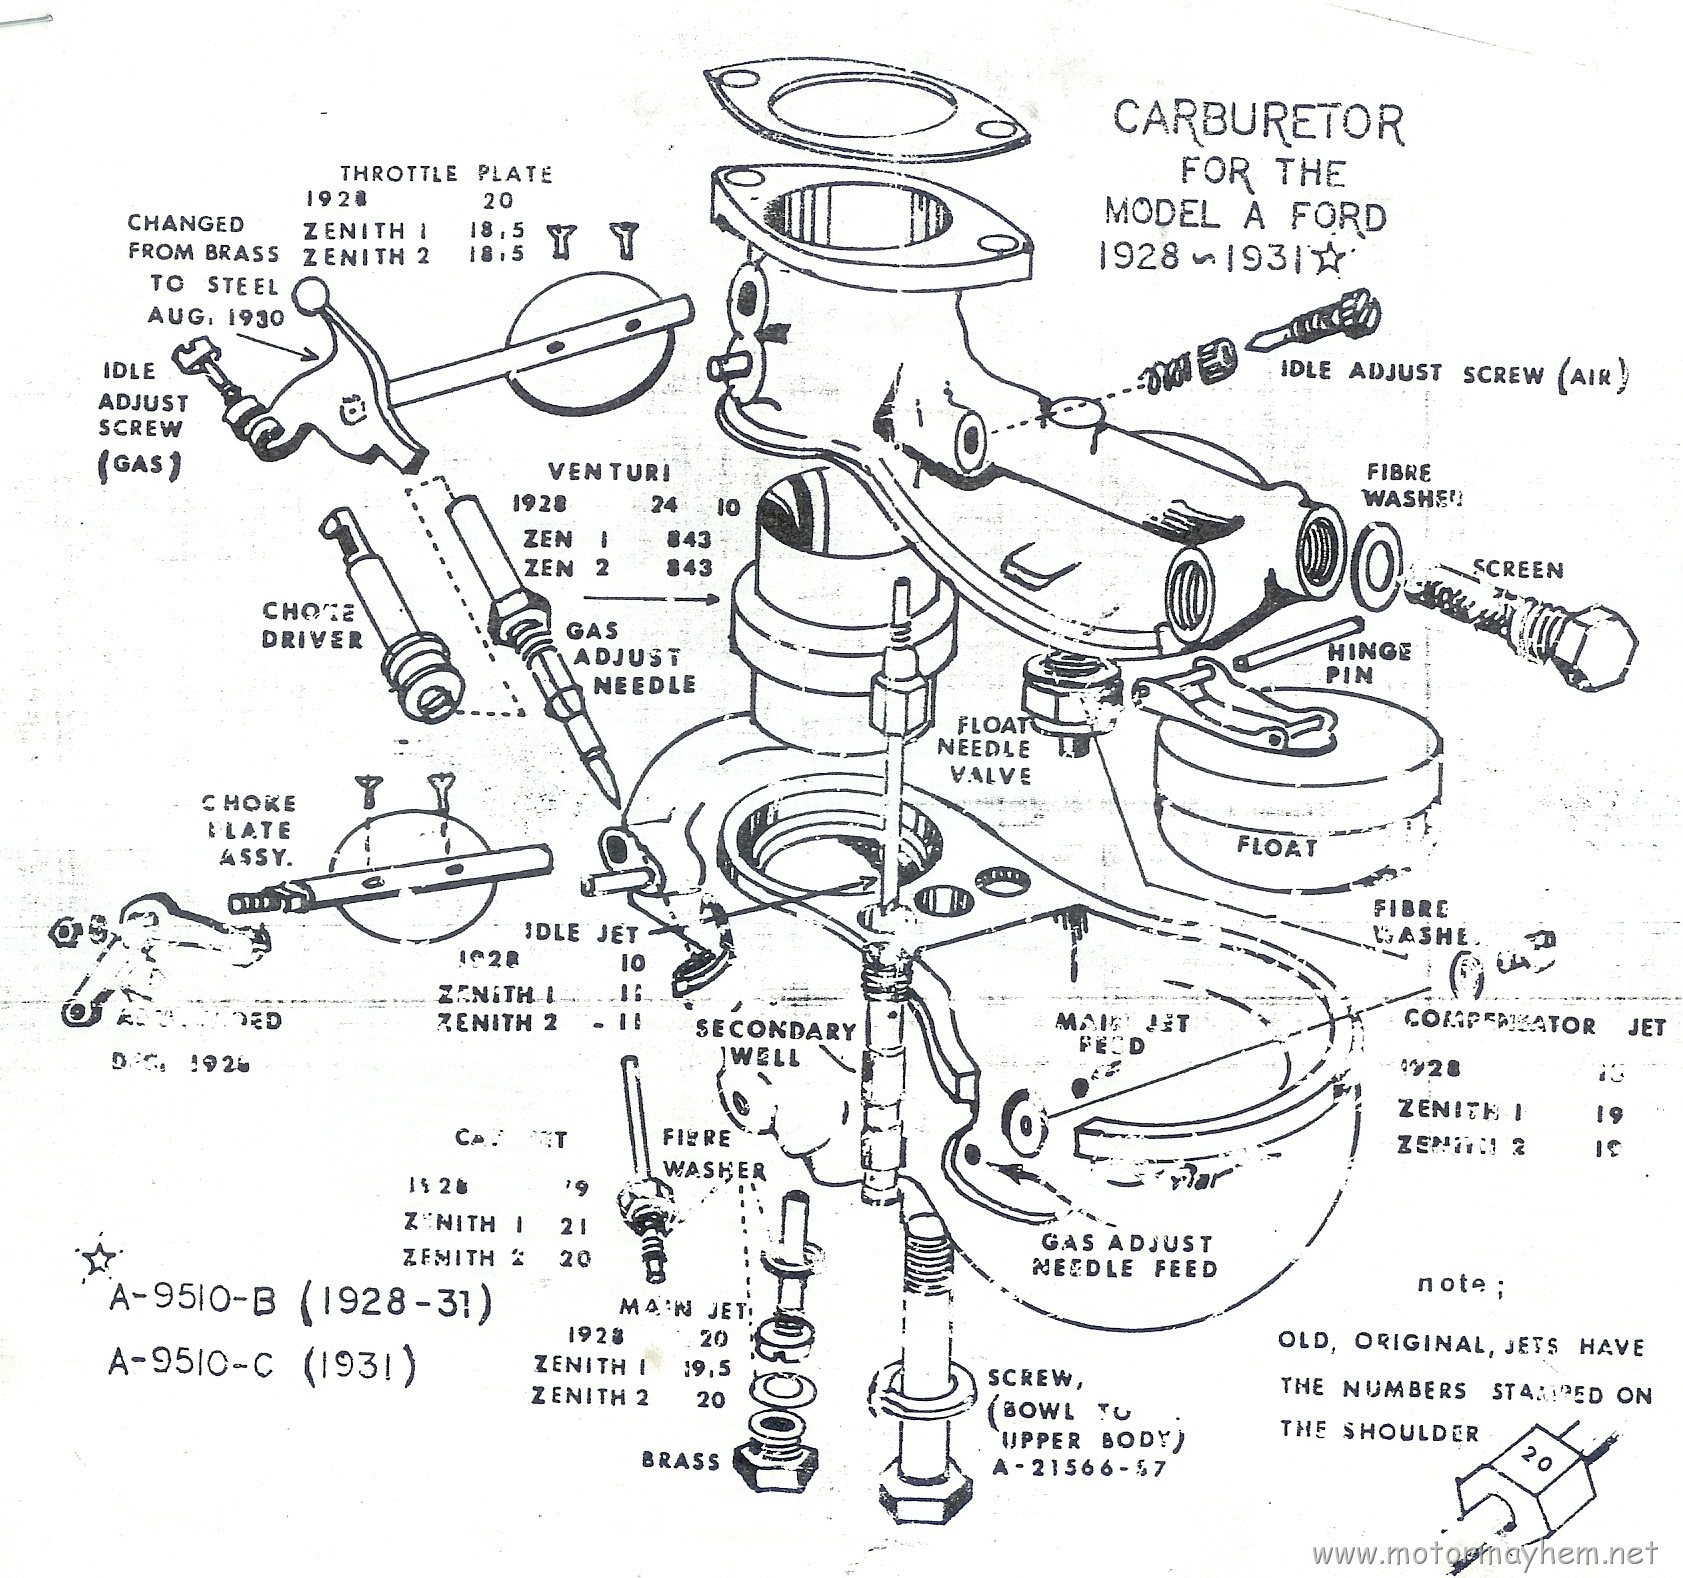 Wiring Diagram For Model A Ford